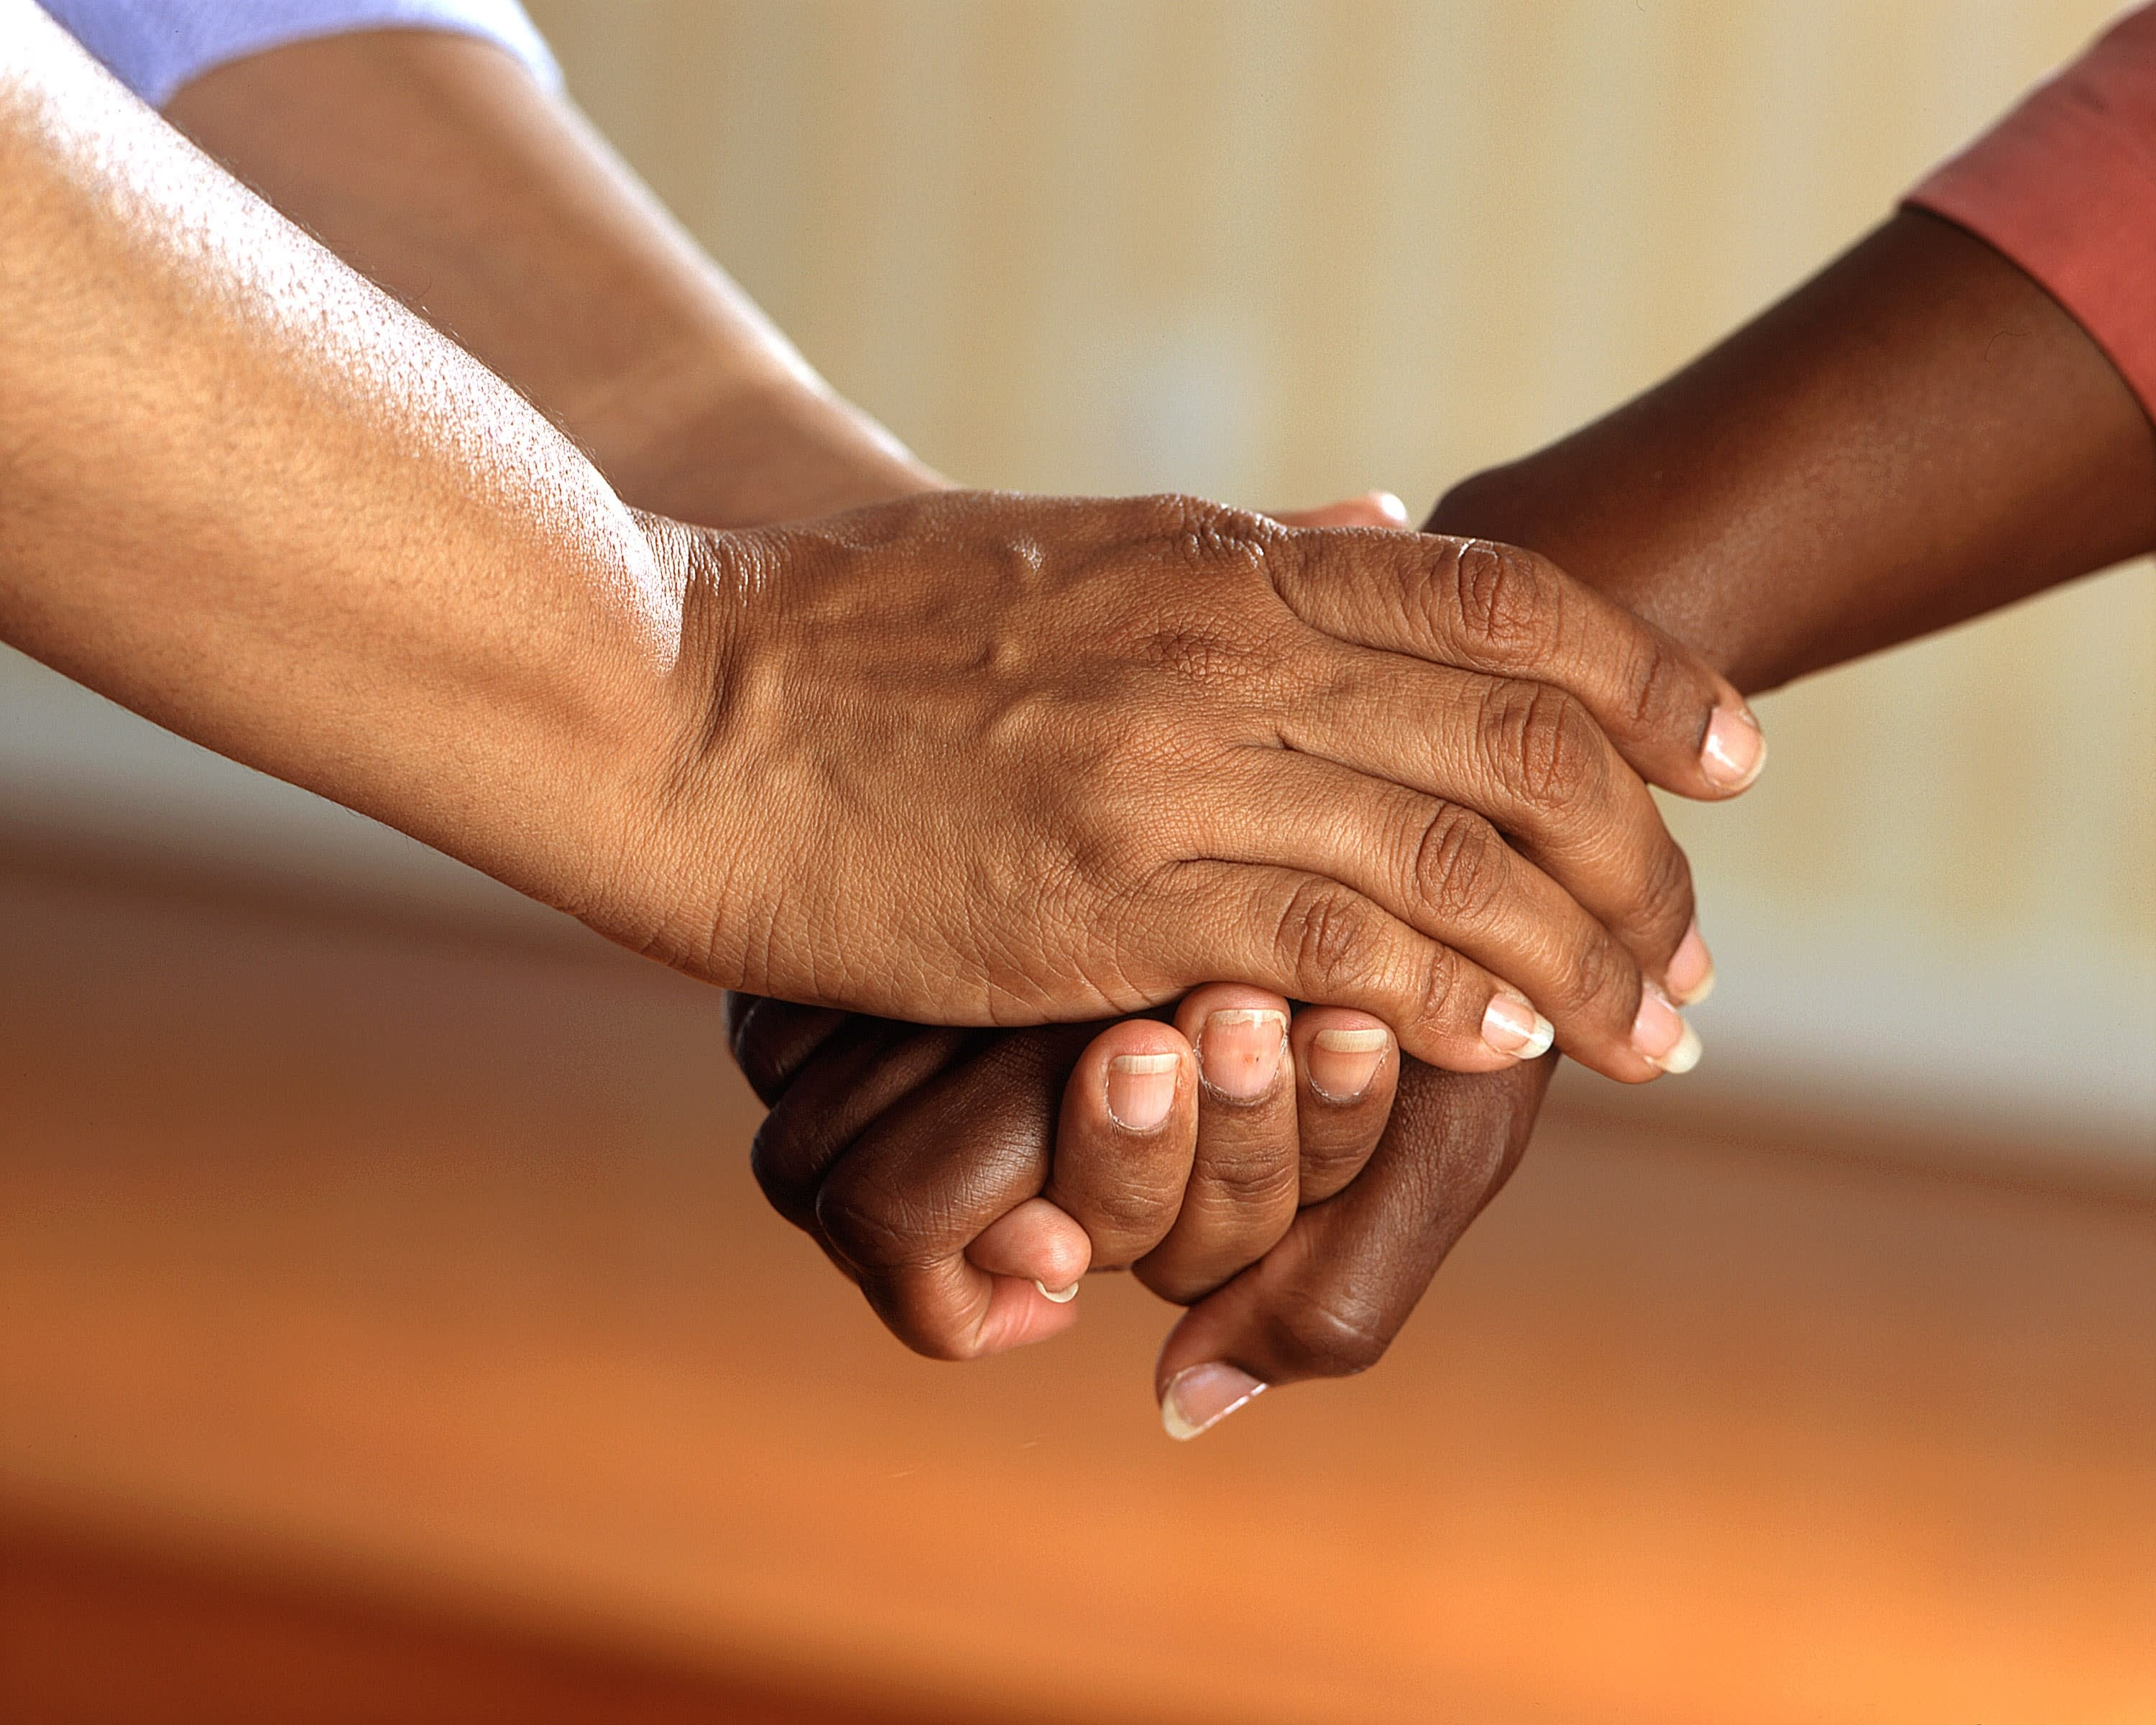 How client relationships reflect the adviser's lived experience